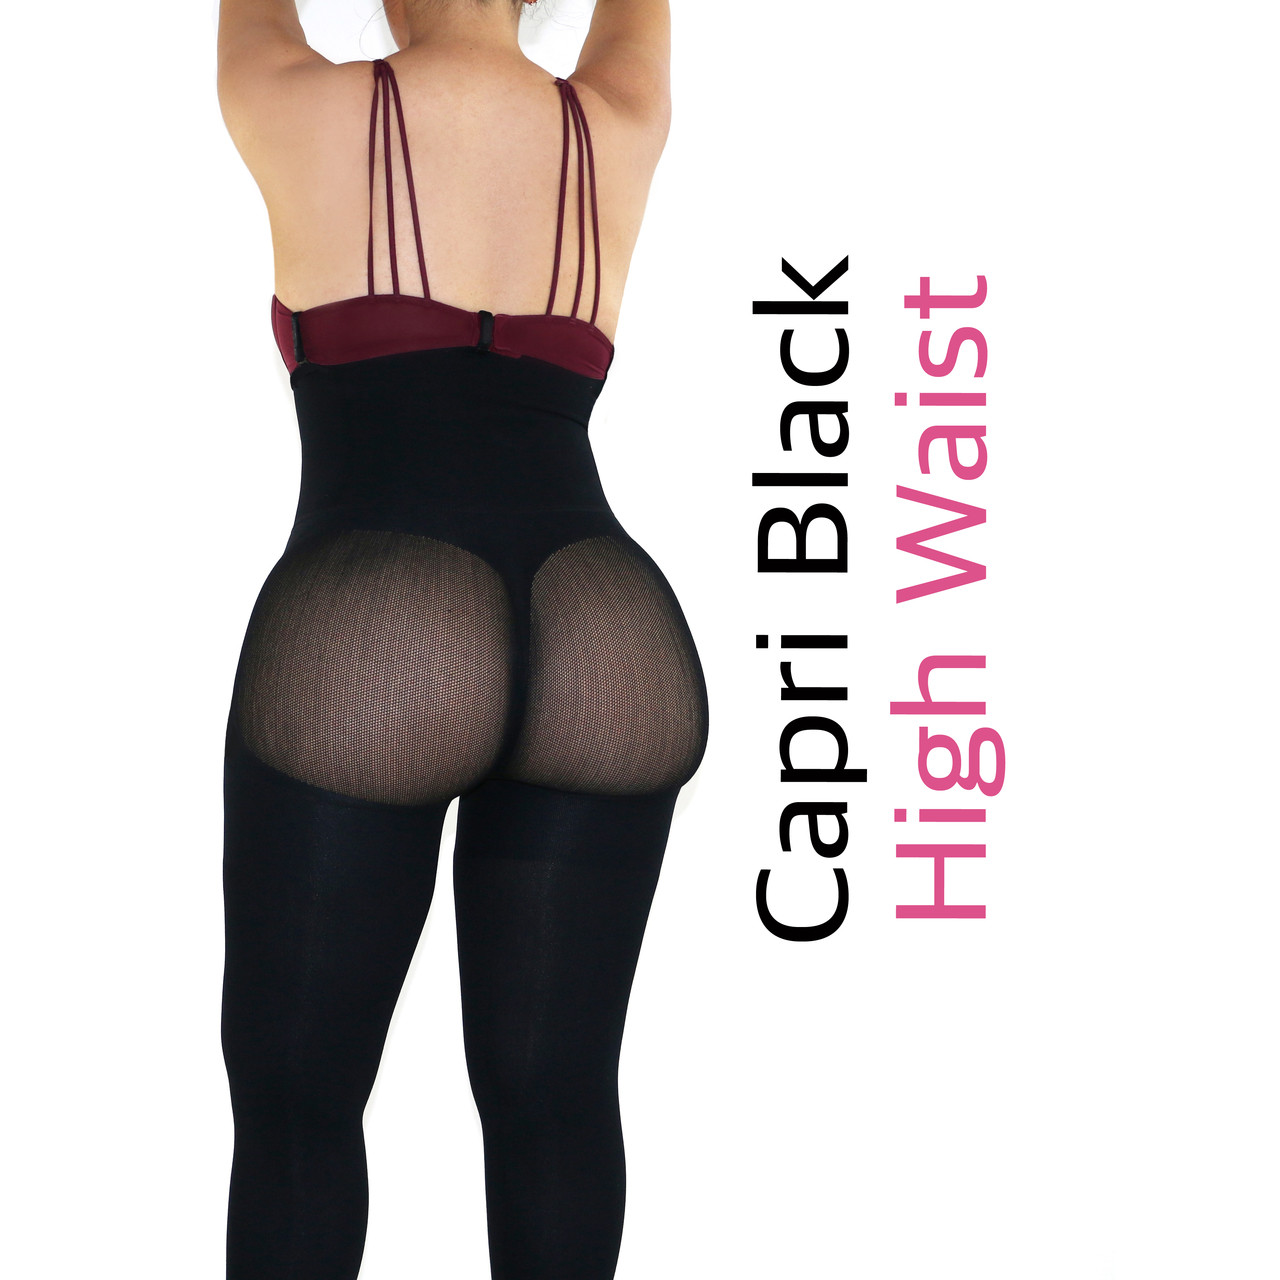 9052b95e950f5 Capri Happy Butt No.7 - Double Layer Waistband Body Shaper Black ...